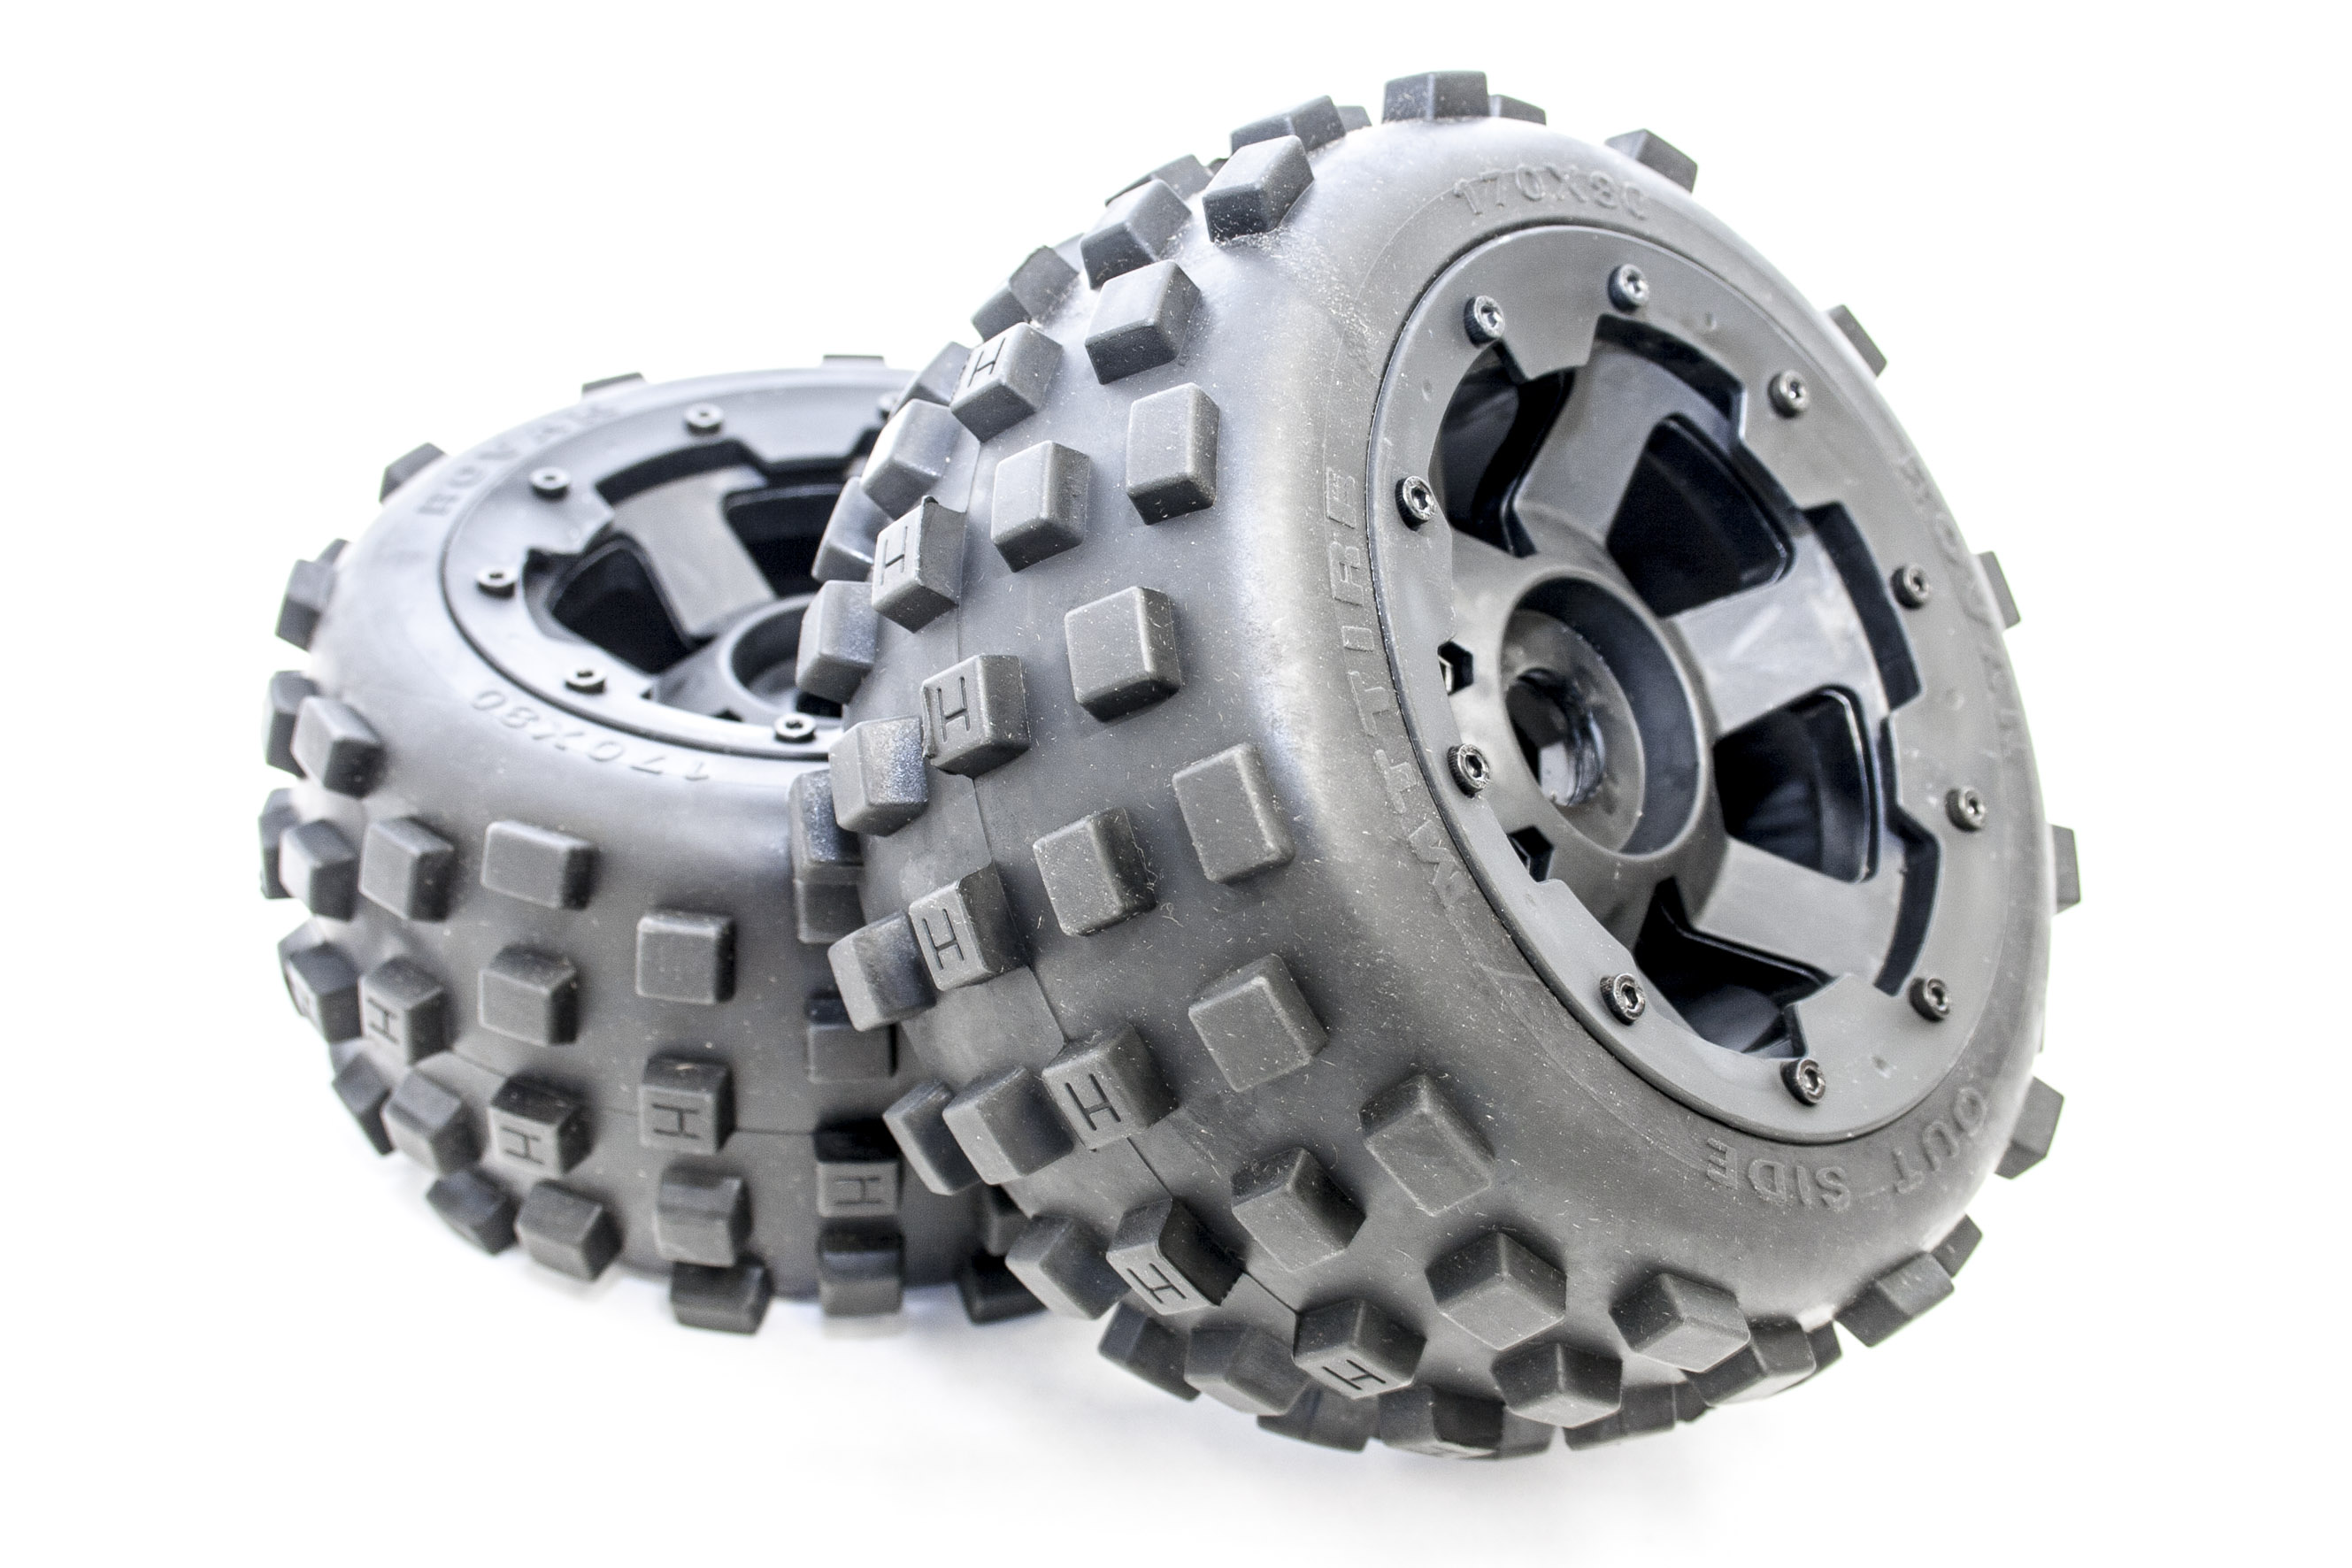 New Rovan Knobby Tires Anti-Growth Mesh Fits HPI Baja 5B SS 2.0 King Motor Buggy